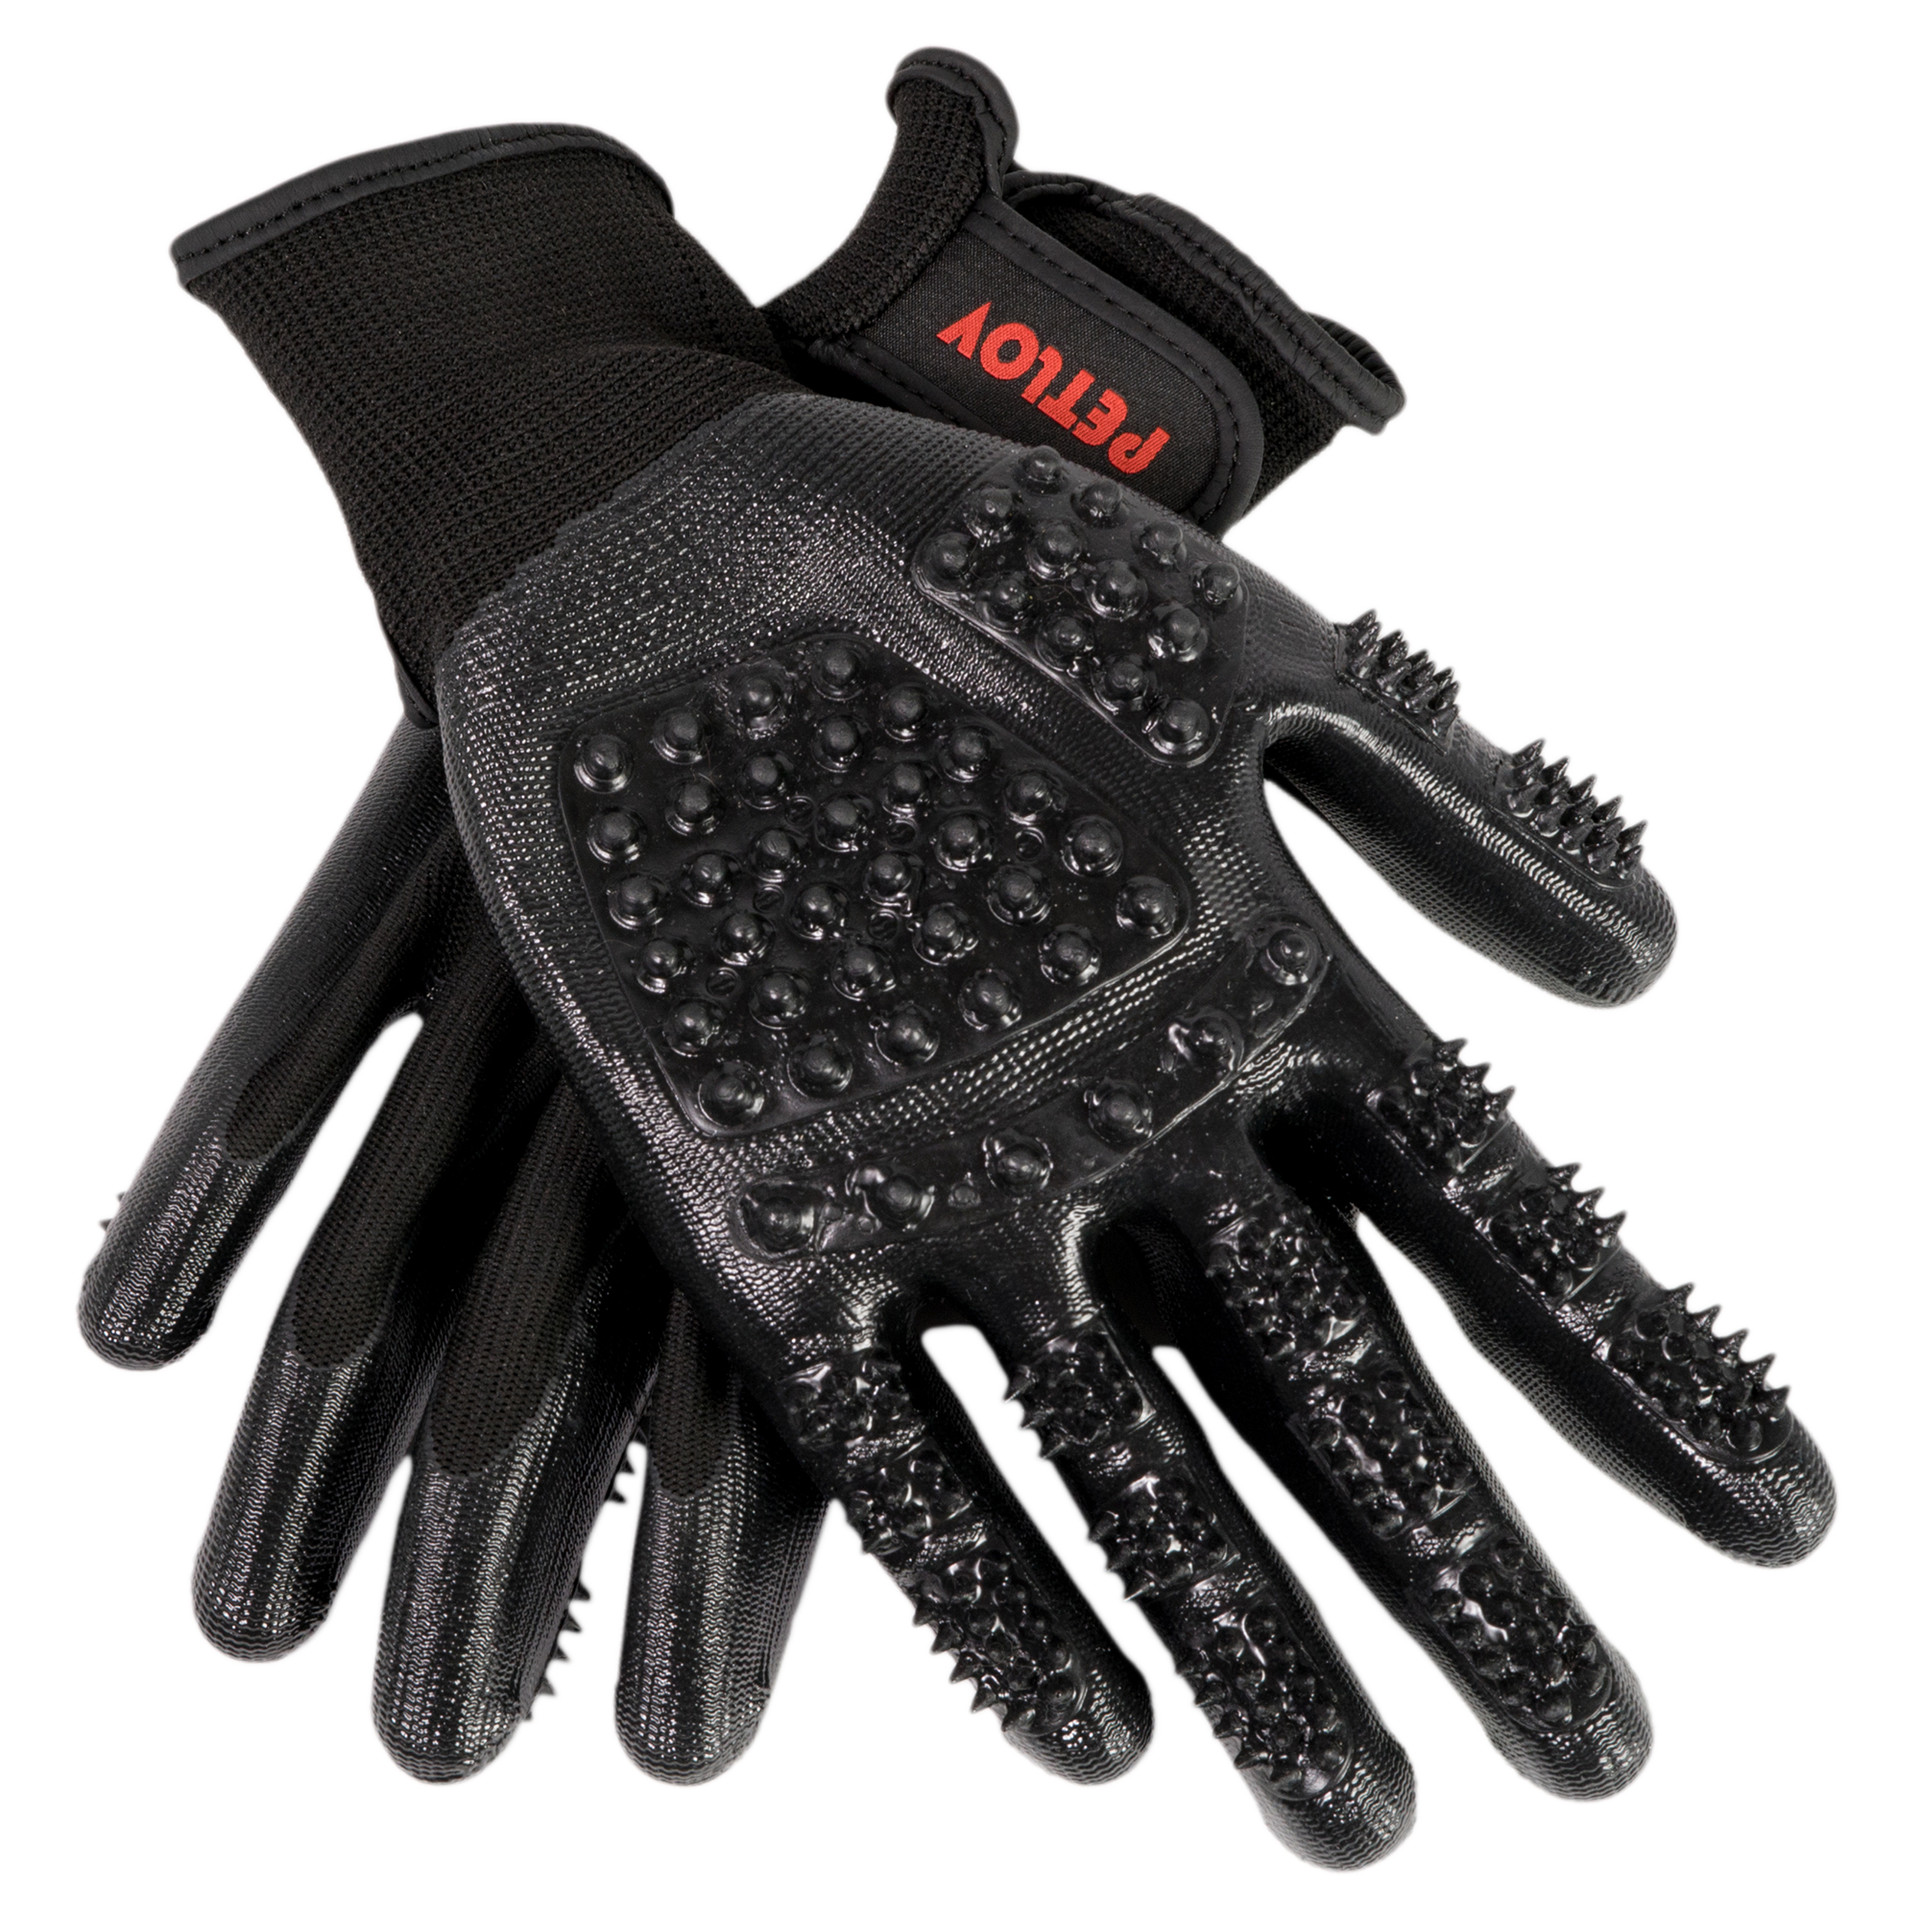 Pet Grooming Gloves.jpg